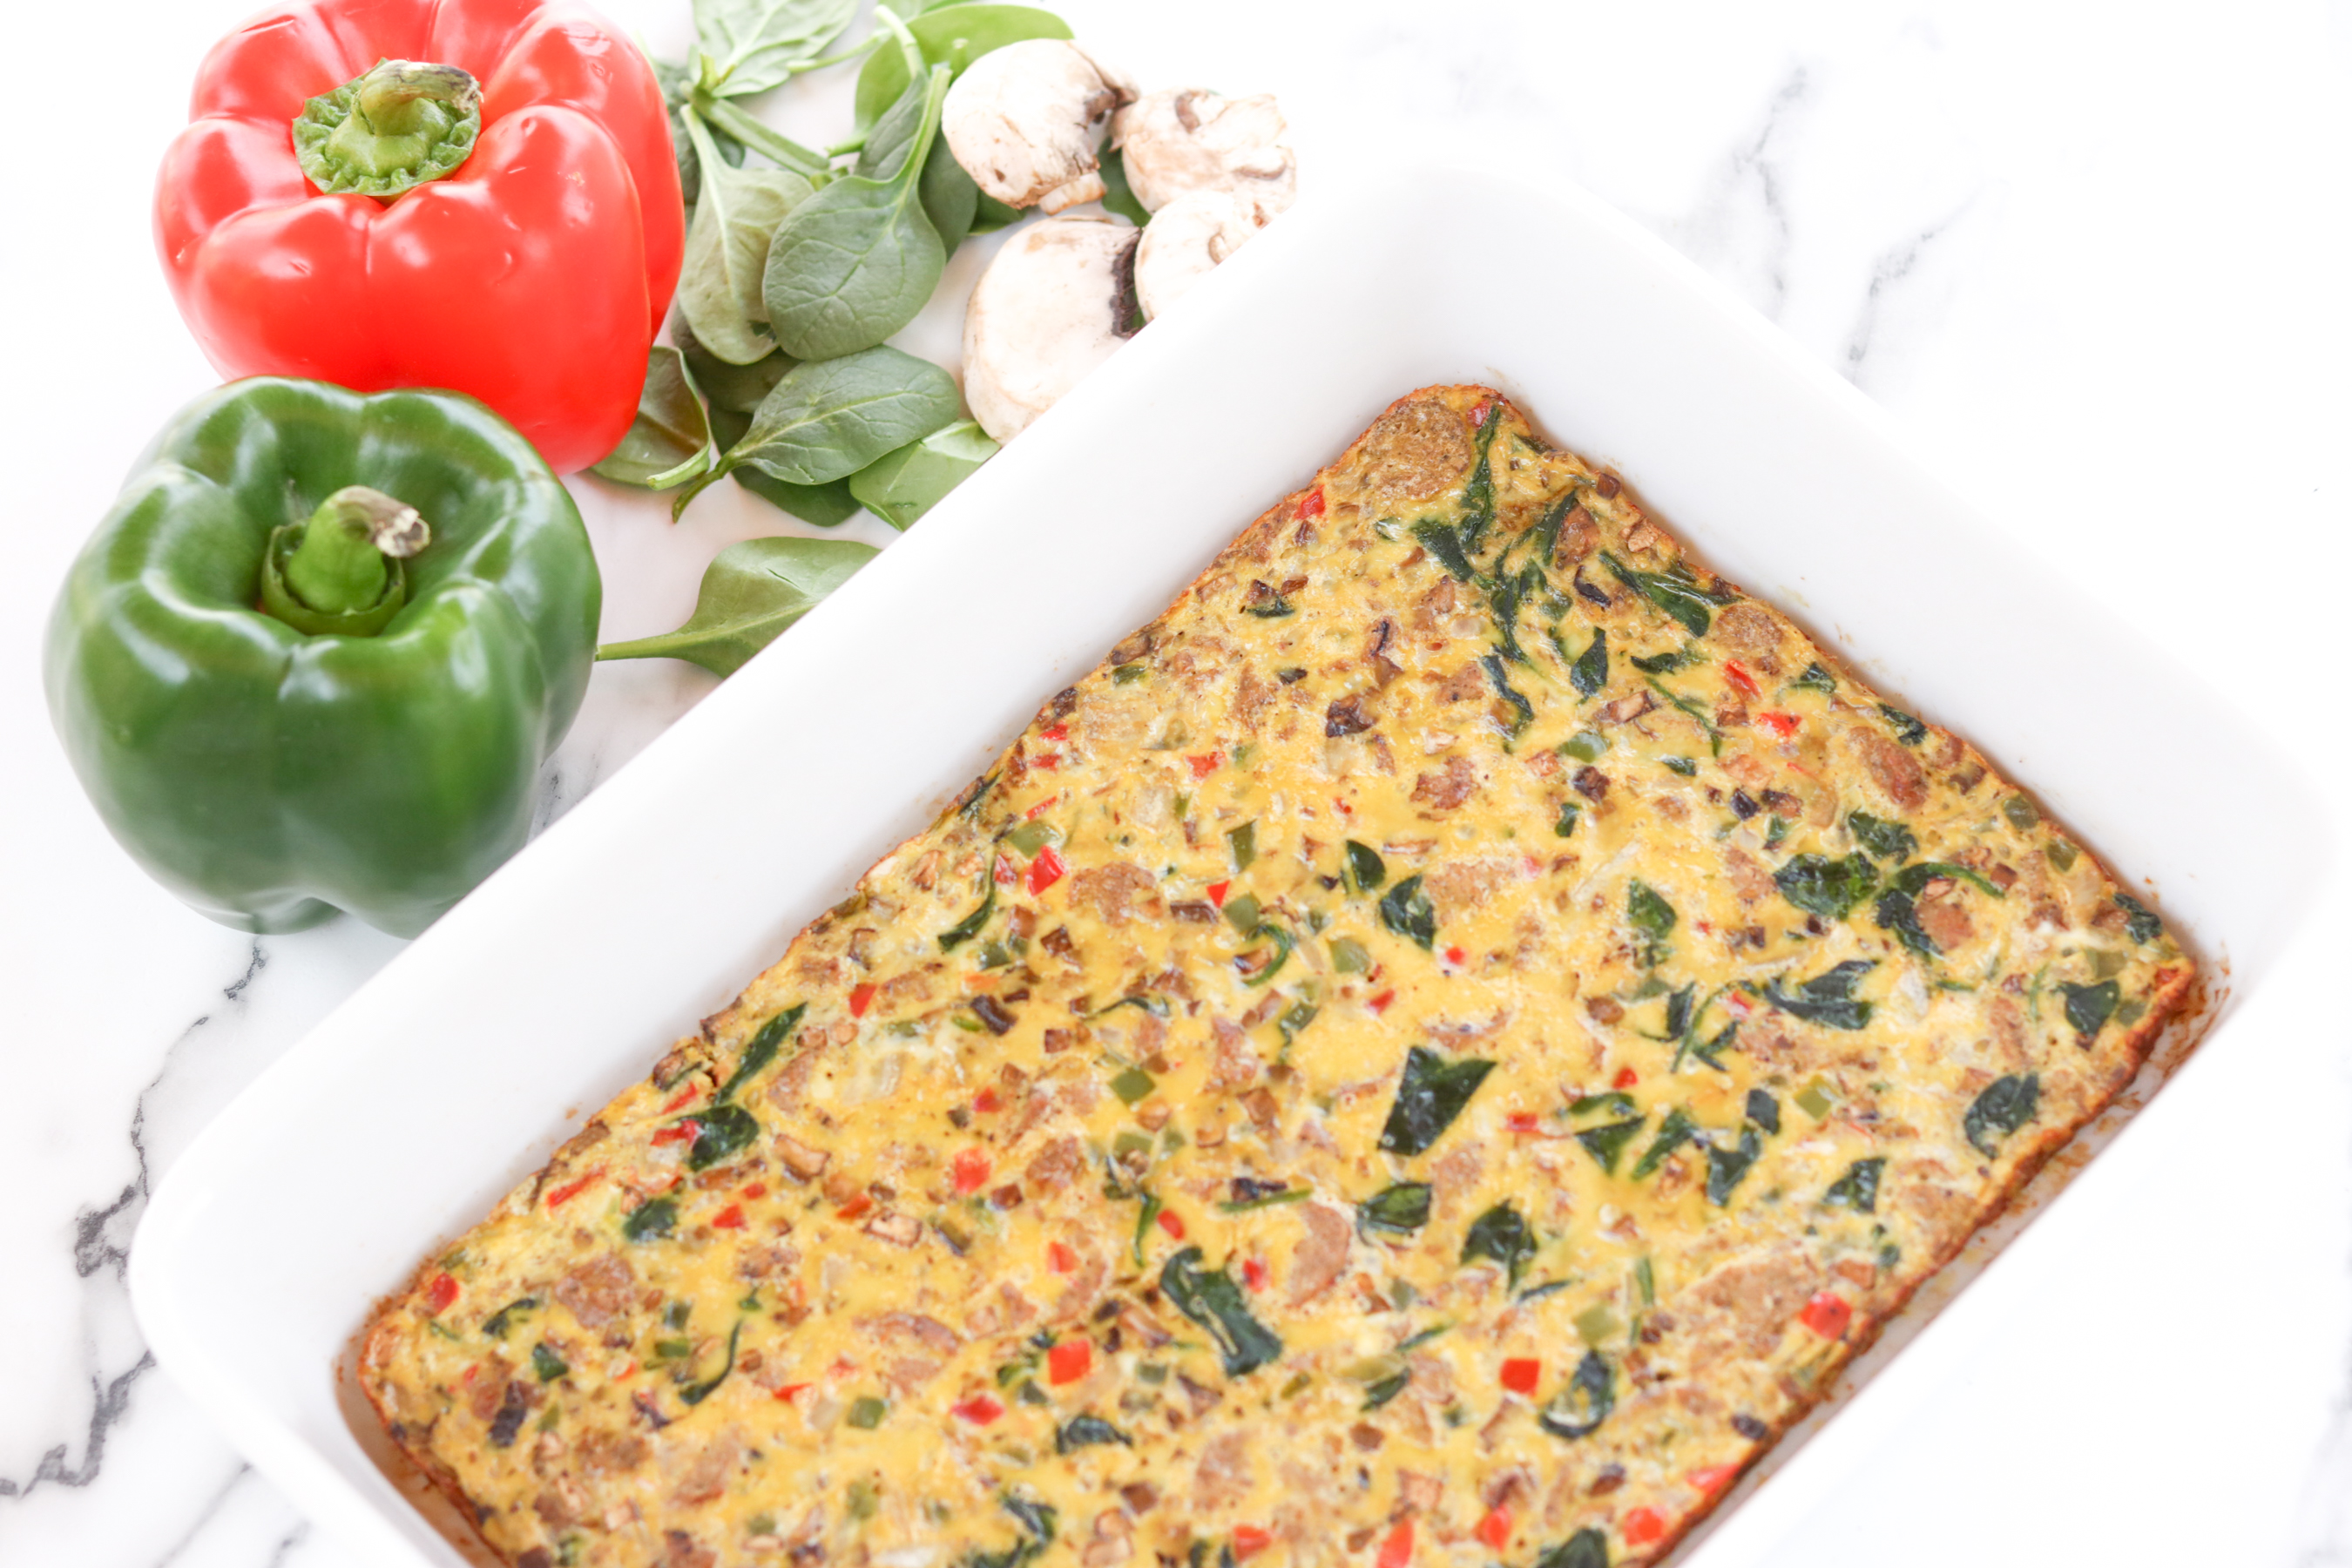 Low Carb Egg Casserole Paleo Keto Faster Way To Fast Loss Friendly